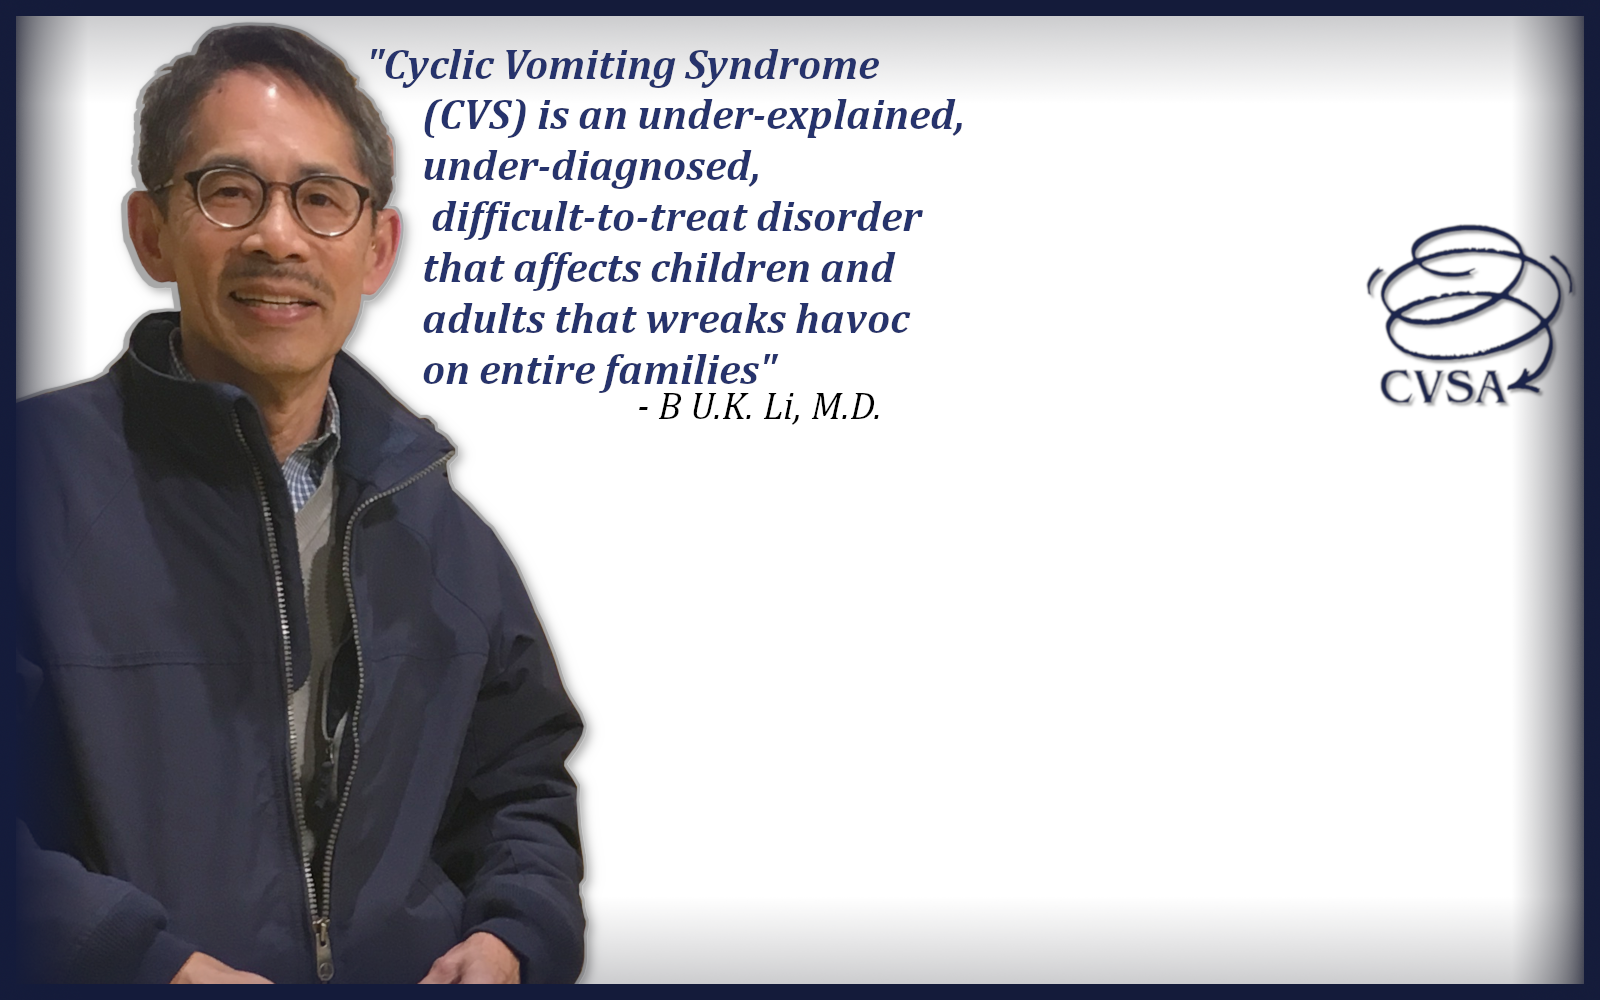 In honor of Dr. B Li's retirement in 2016, the Cyclic Vomiting Syndrome Association created a new education initiative to help train new professional leaders in the treatment and research of CVS. image